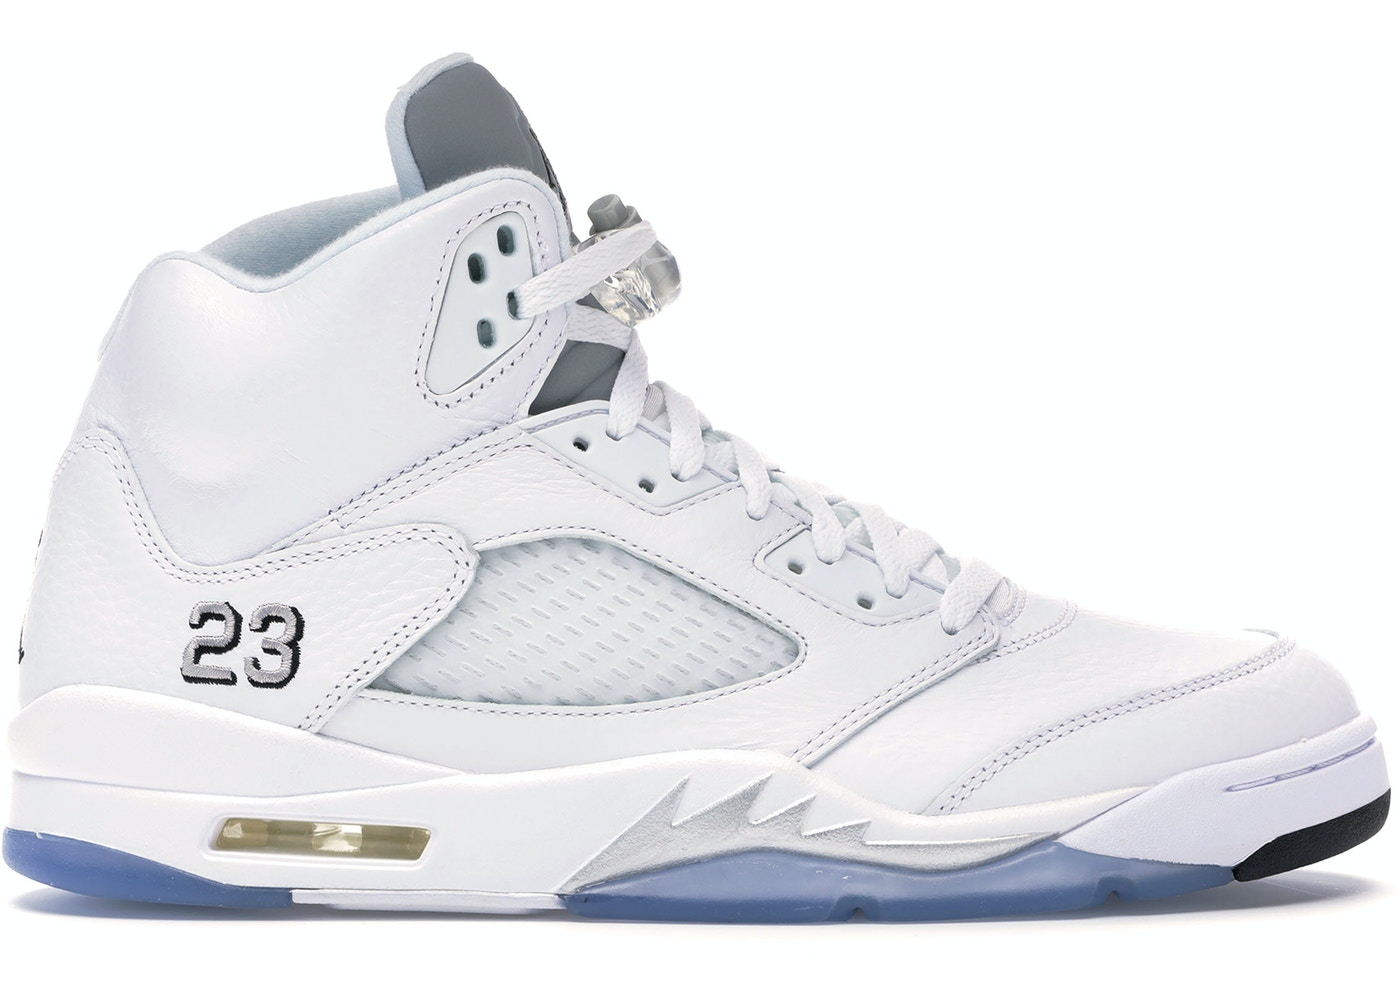 big sale aa2ac 505c1 Jordan 5 Retro Metallic White (2015) - 136027-130